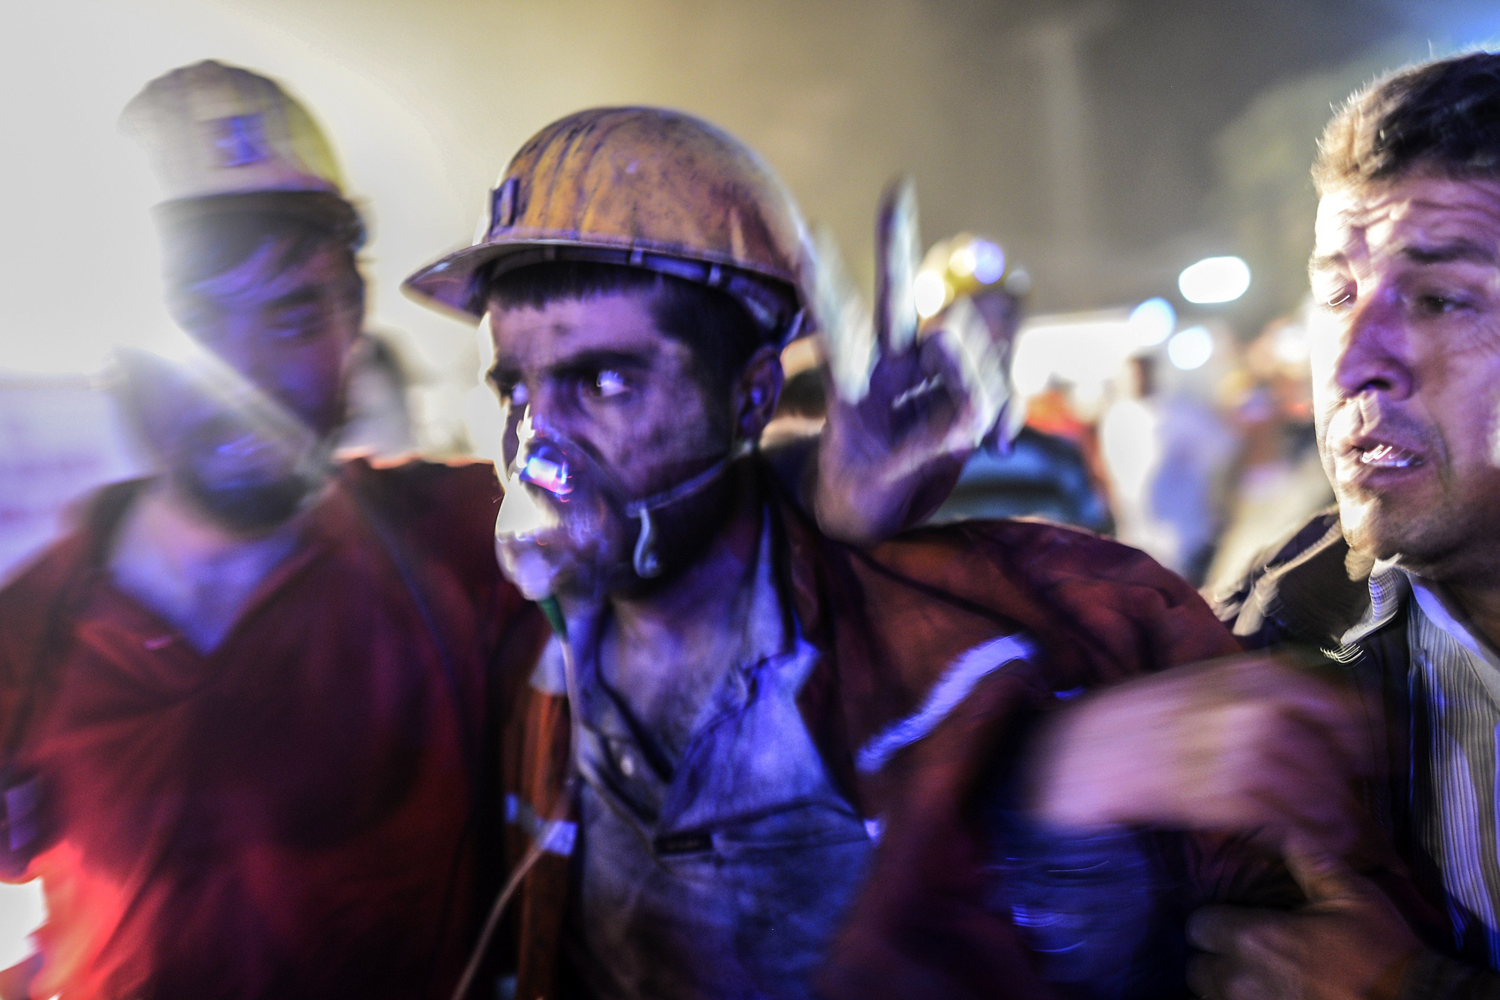 May 13, 2014. An injured miner came out carried by rescuers, on  after an explosion in a coal mine in Manisa.